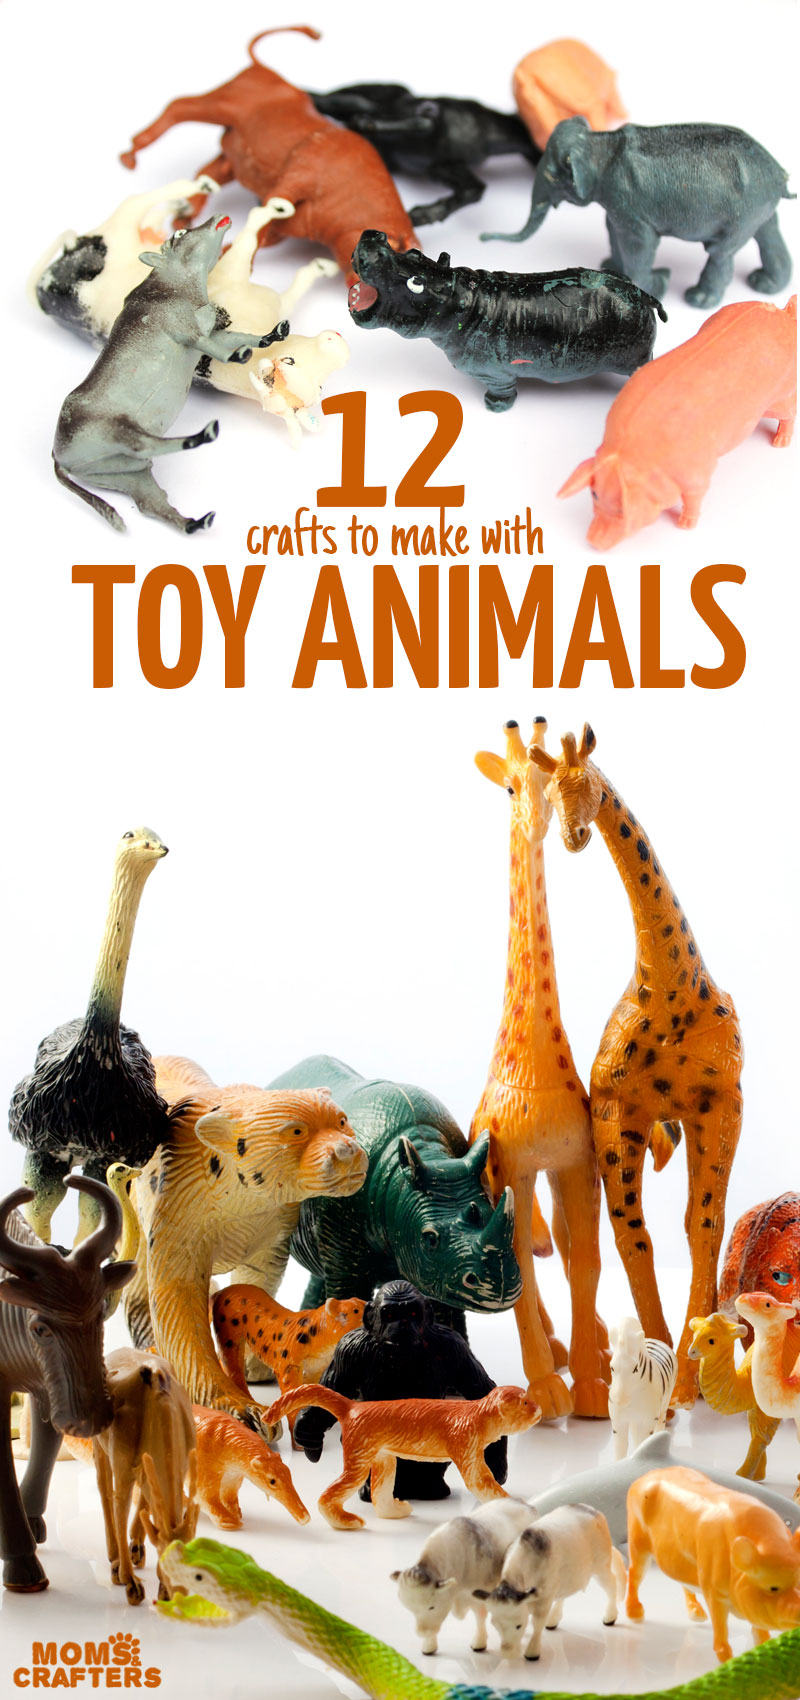 Click for 12 cool diy projects and things to make with toy animals! #diy #upcycling #crafts